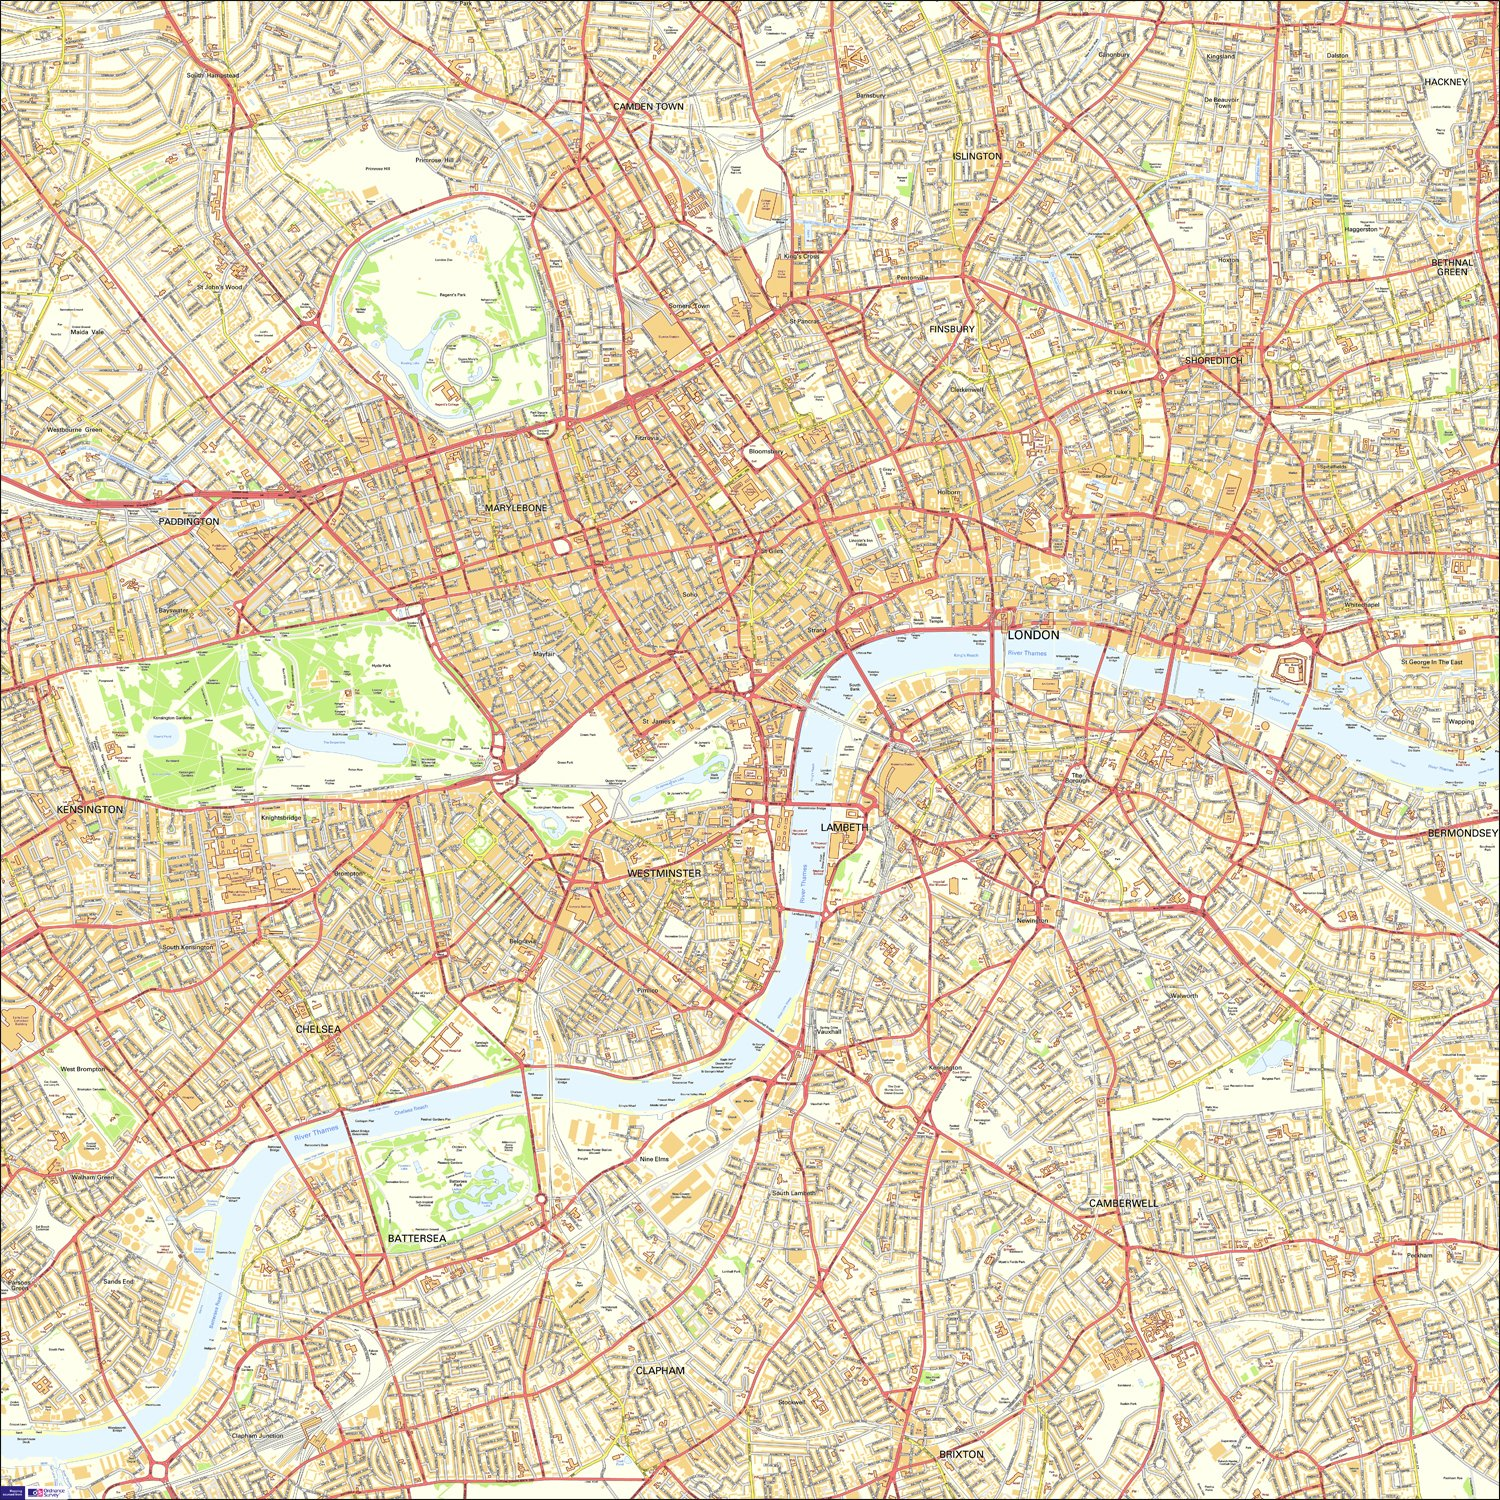 Central London Street Map.Large Central London Street Map 100 X 100 Cm Printed On Durable Vinyl